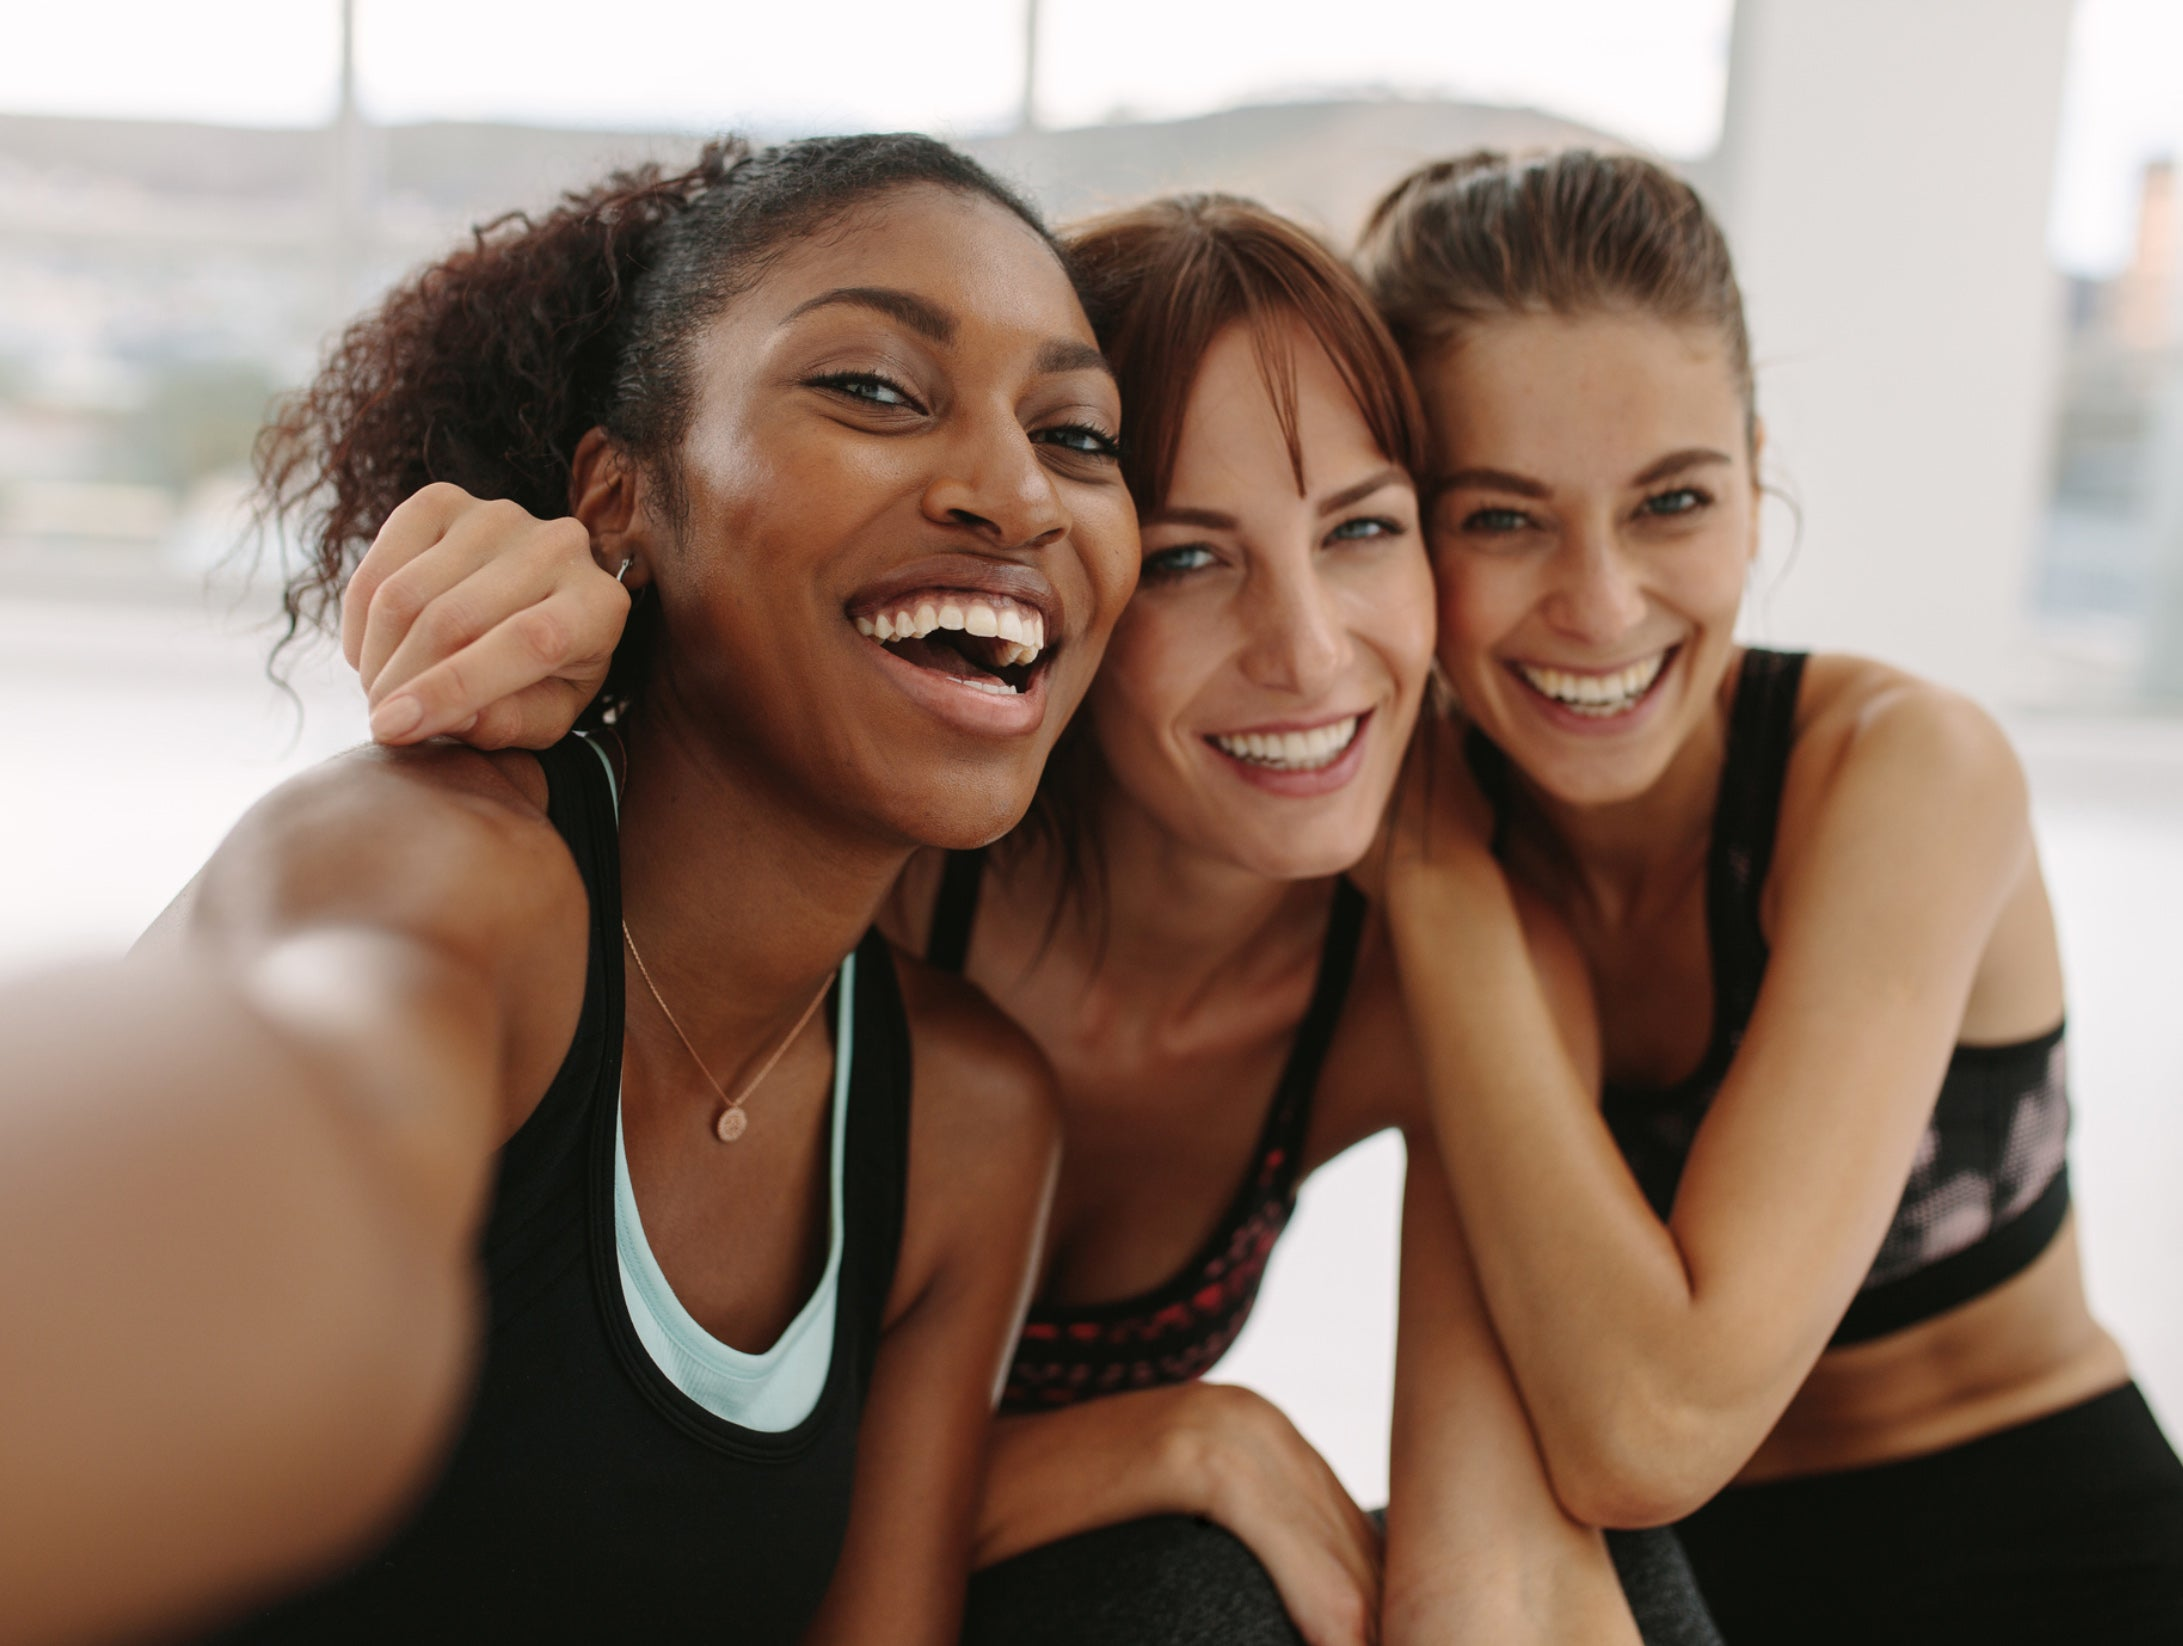 3 women making a selfie - Probiotics Category